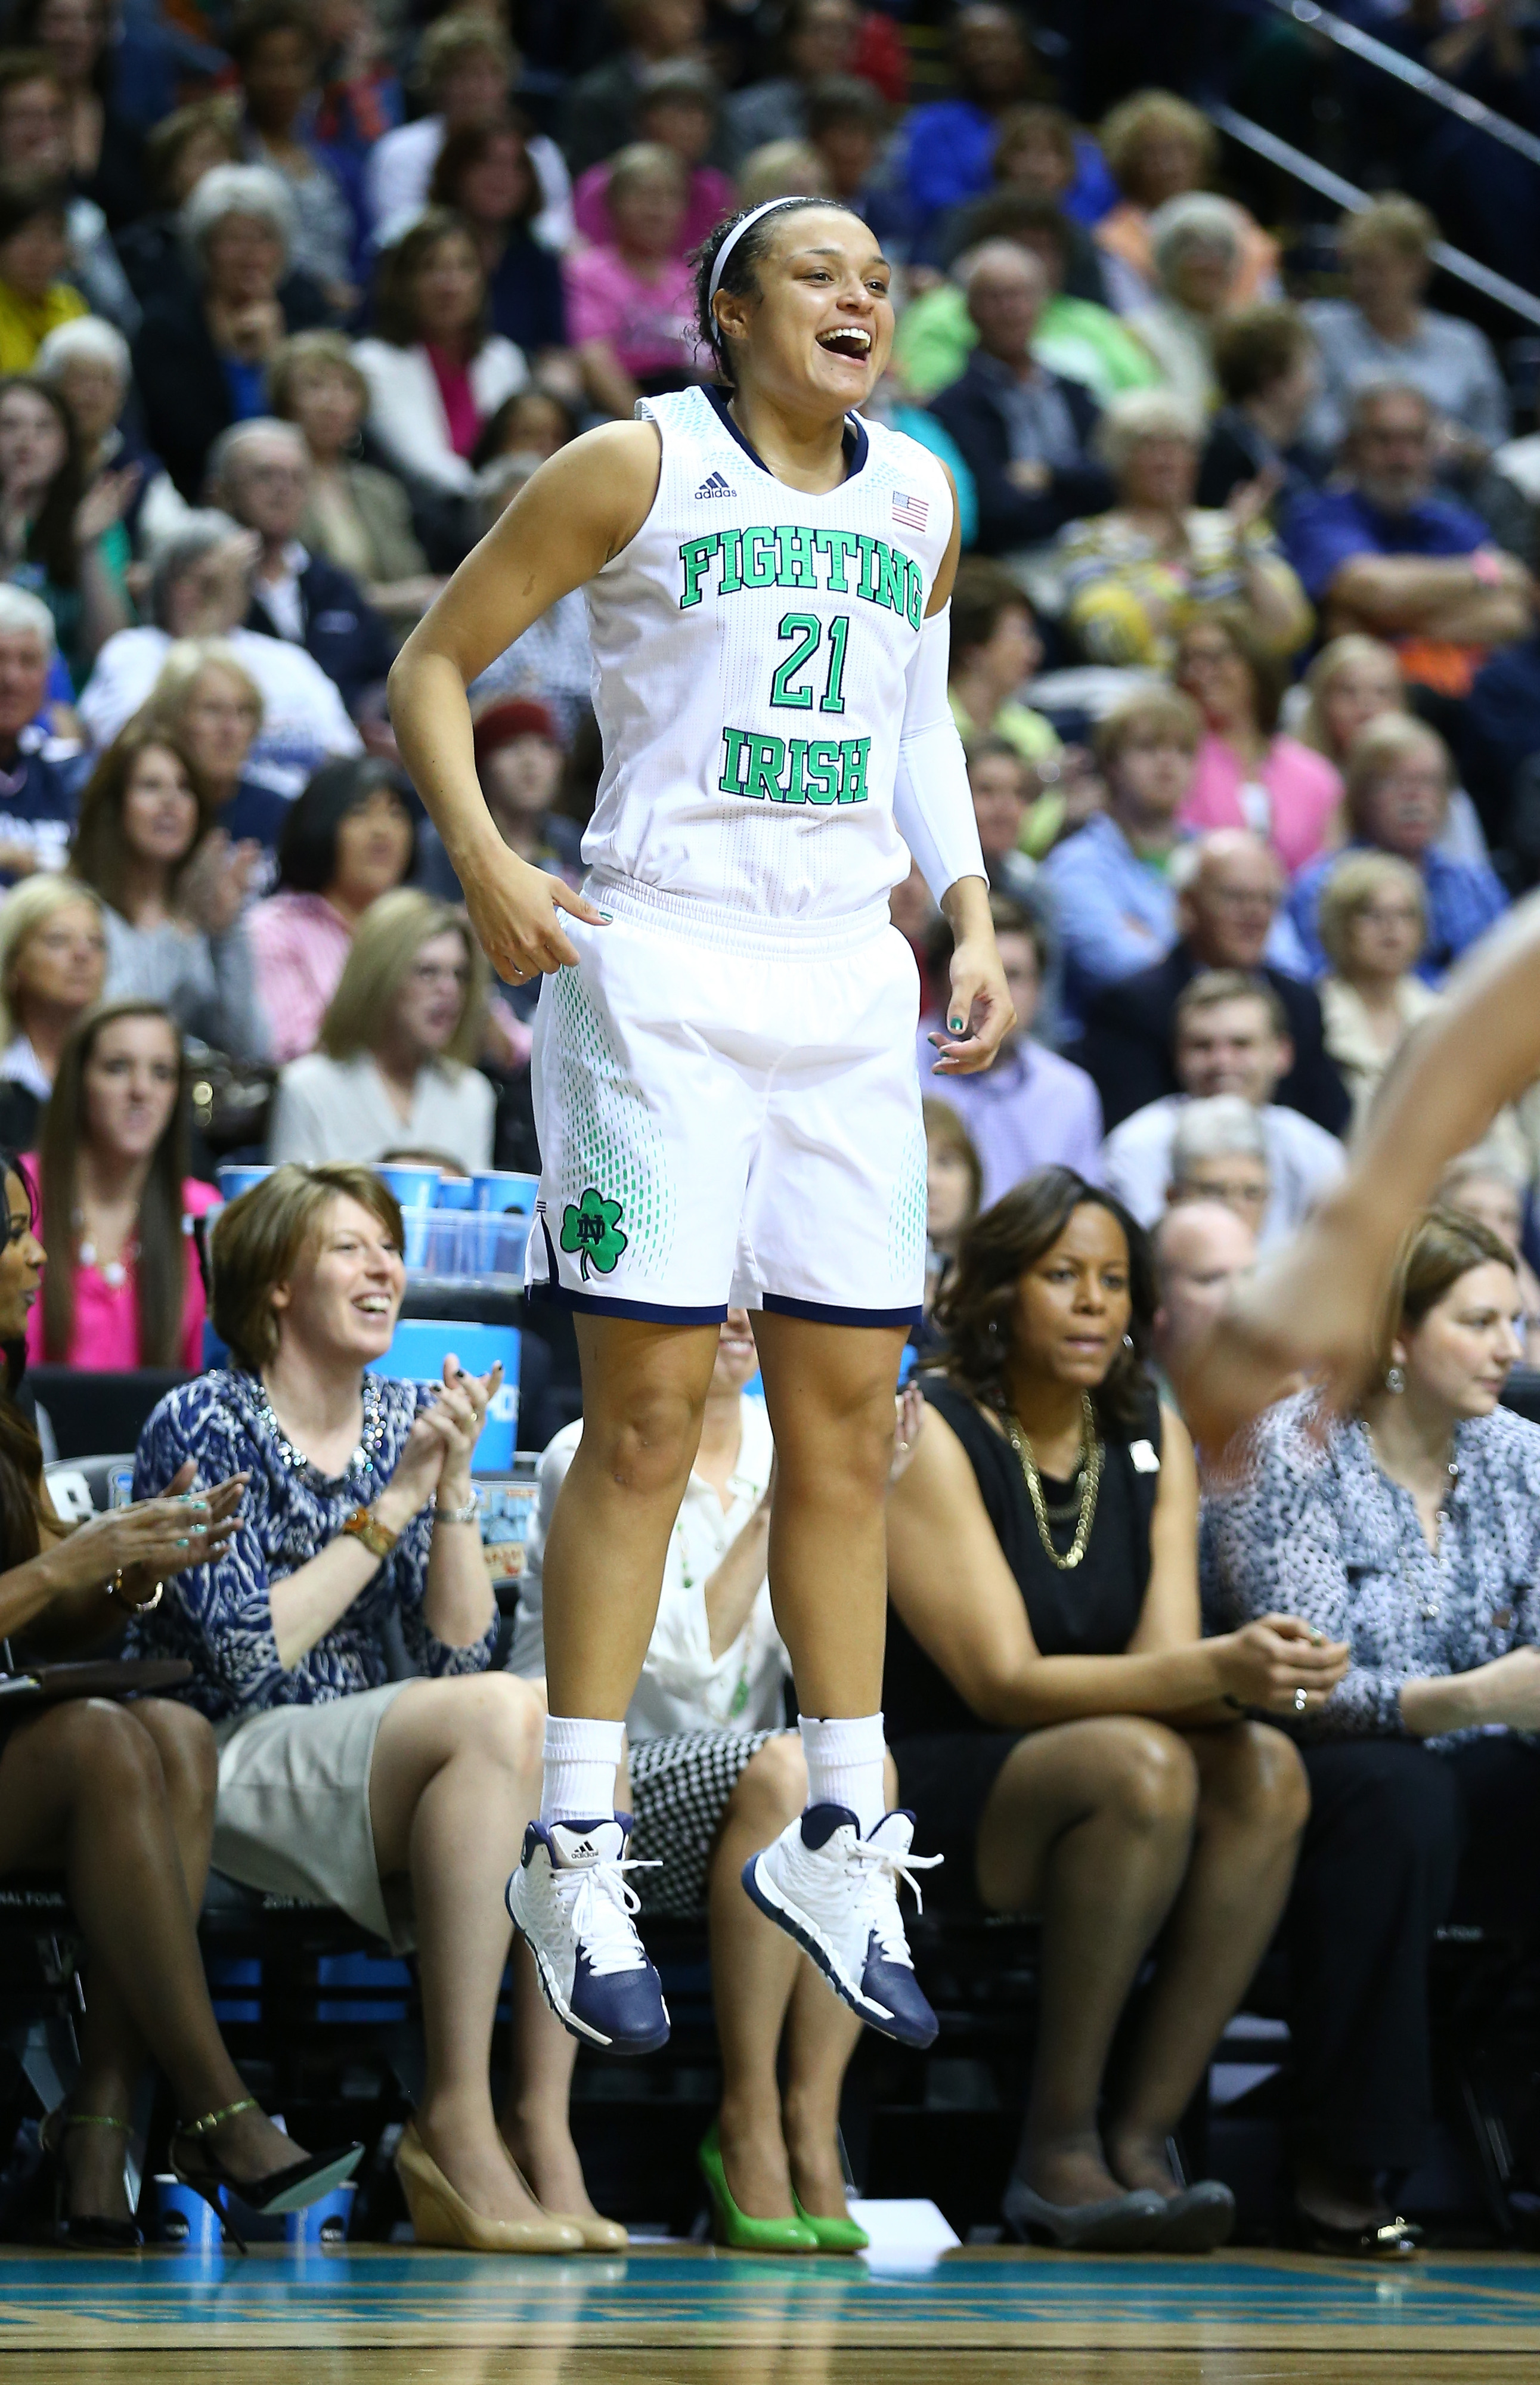 If Notre Dame wins, I think she'll be the tournament's Most Outstanding Player.